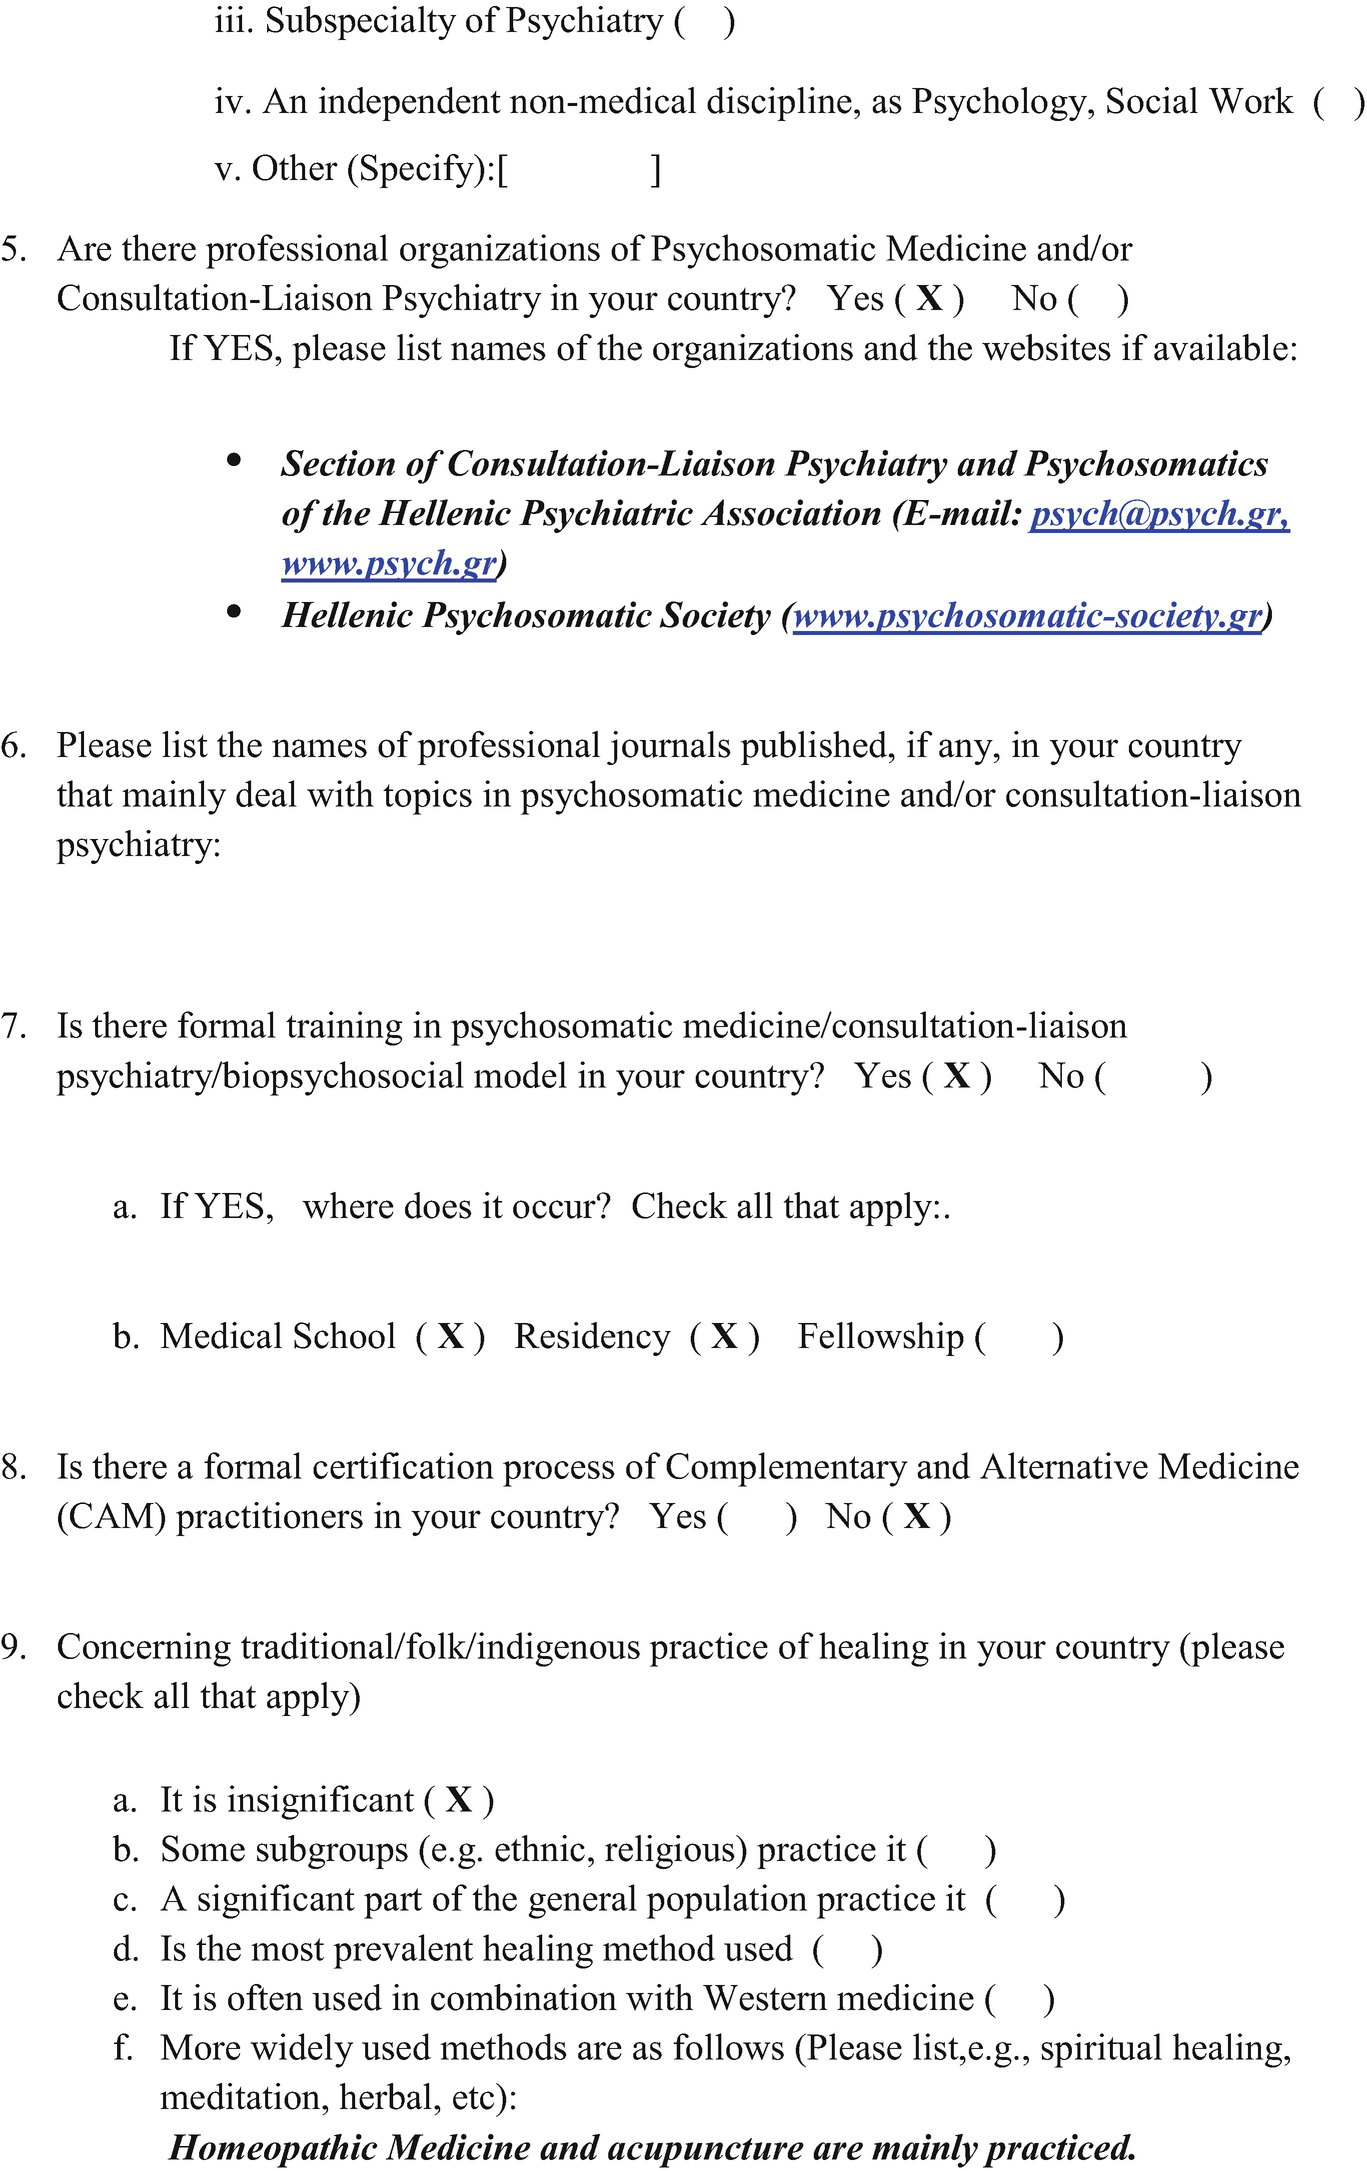 Psychosomatic Medicine in Modern Greece | SpringerLink